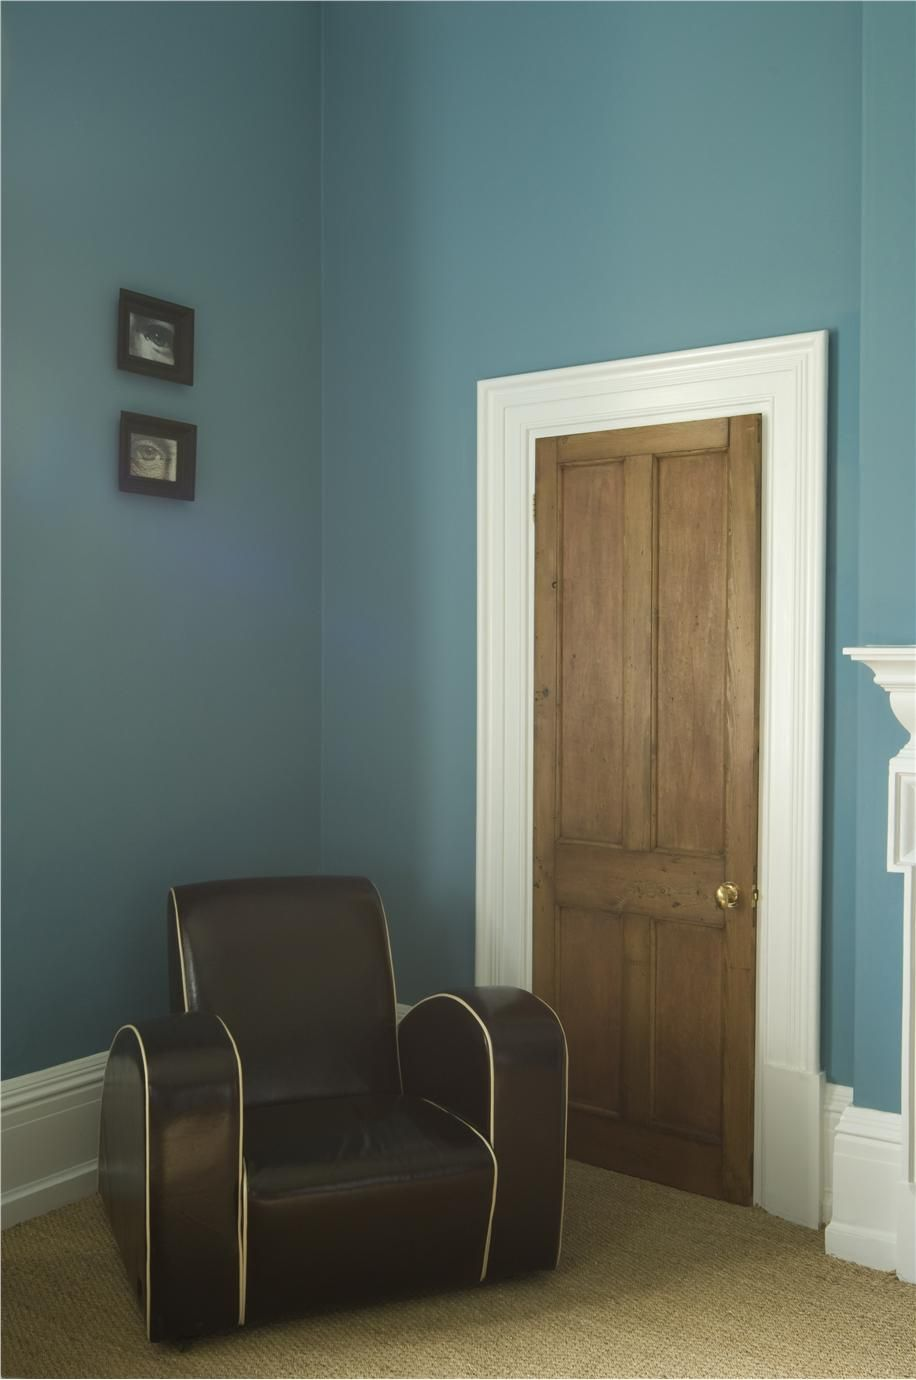 Farrow And Ball Inspiration. Stone Blue No 86 With Wimborne White No 239.